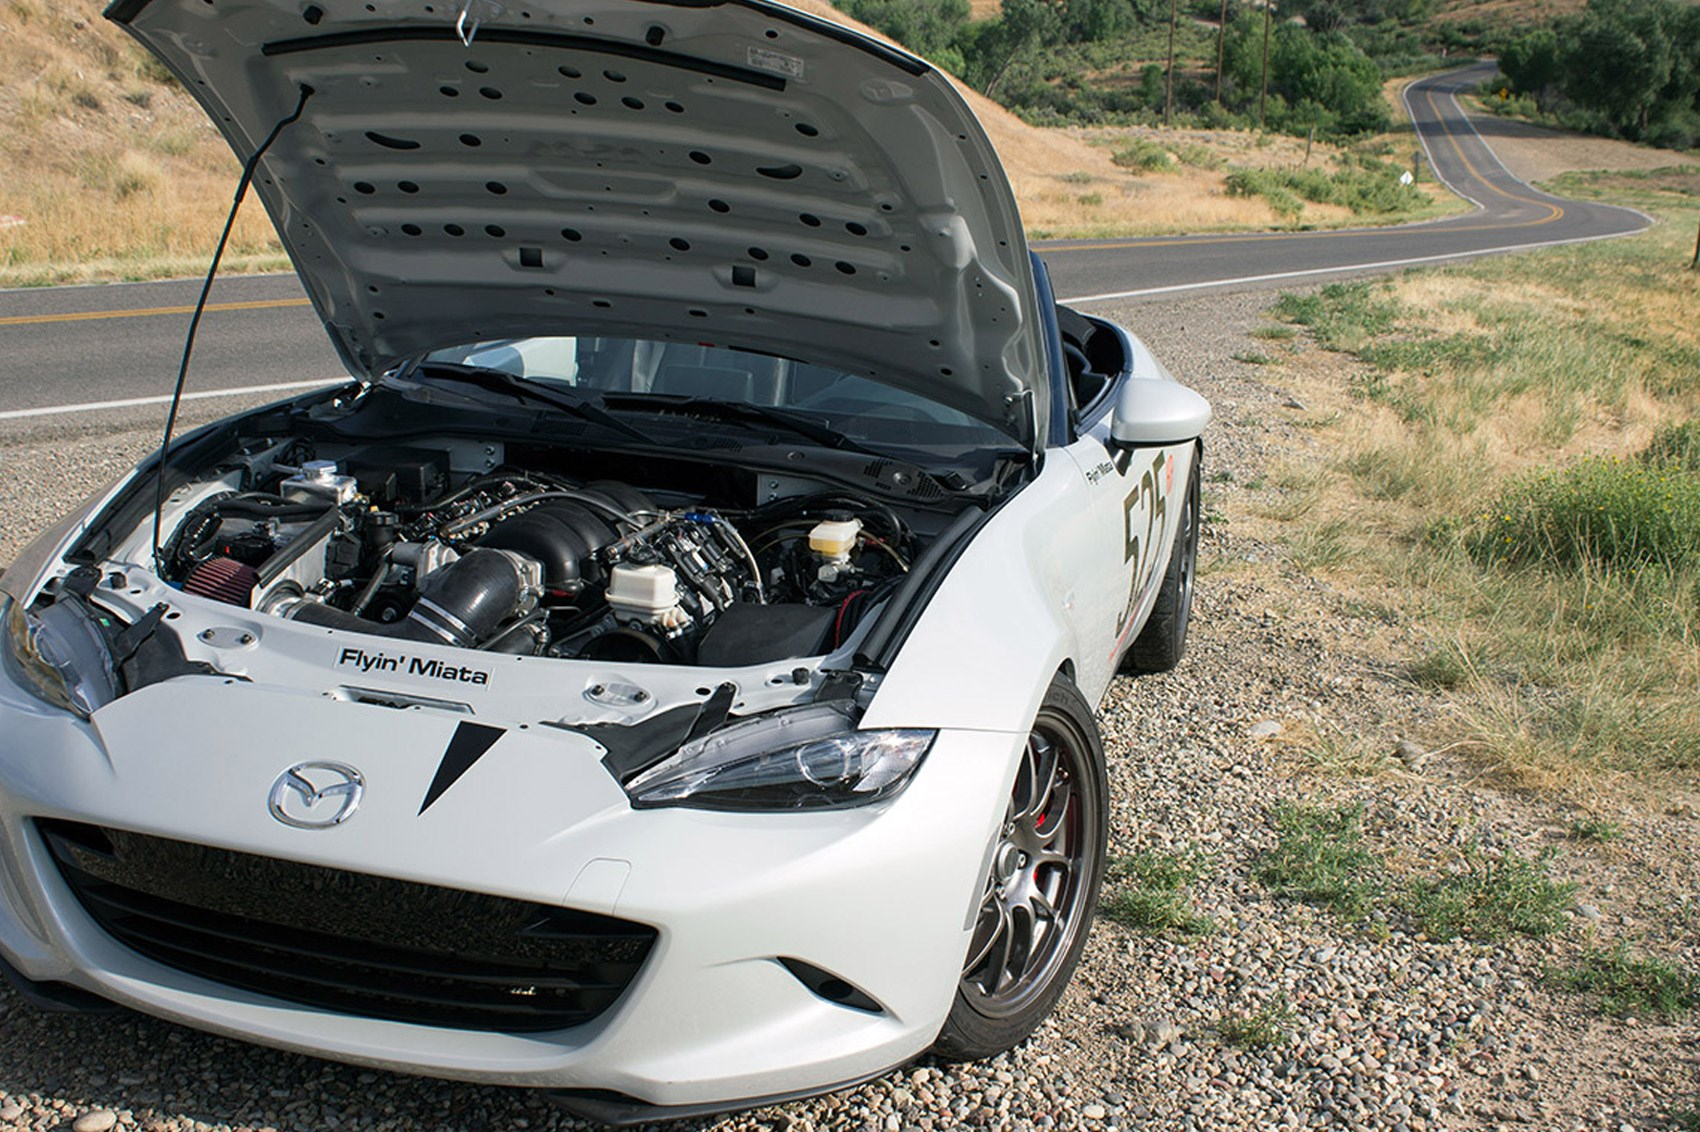 These go up to eleven: Flyin' Miata launches ND Mazda MX-5 V8 ...